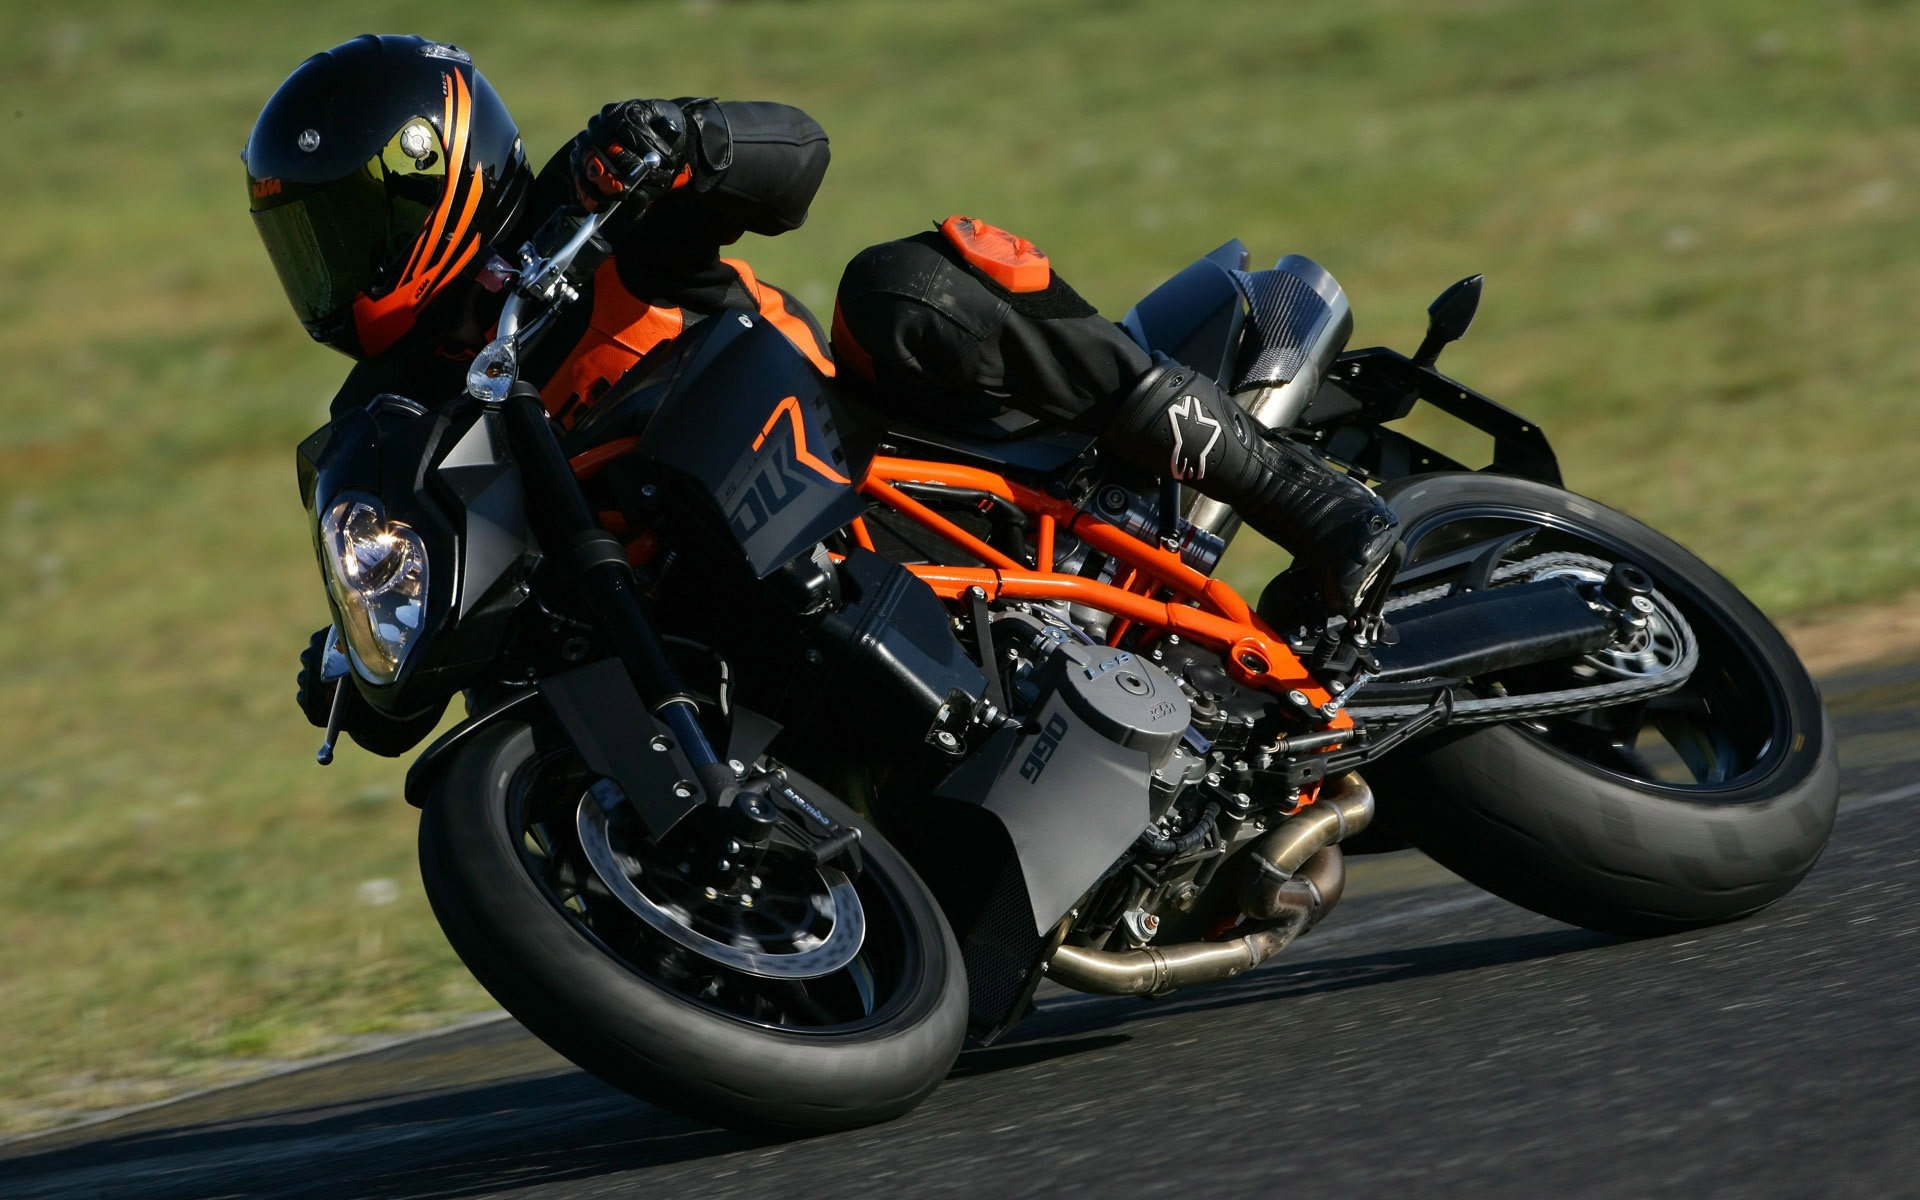 Ktm Superduke wallpaper